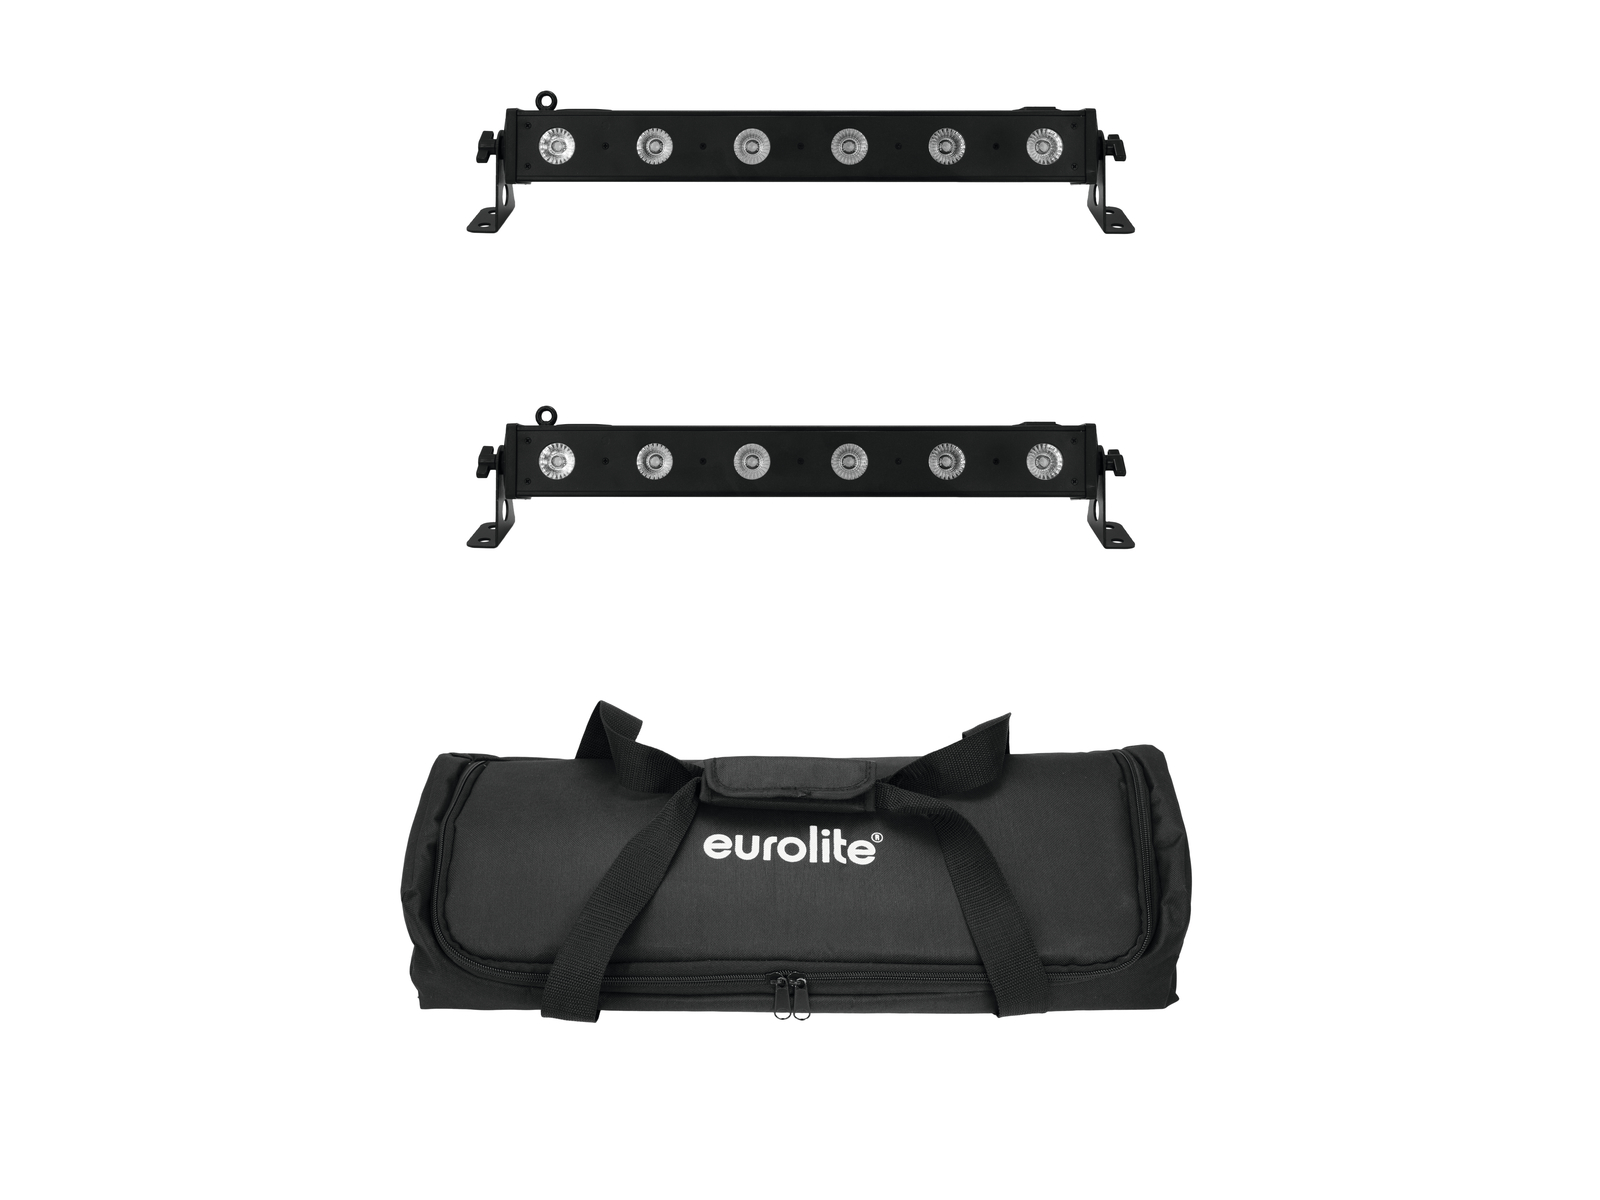 EUROLITE Set 2x LED BAR-6 QLC RGBA + Borsa Morbida